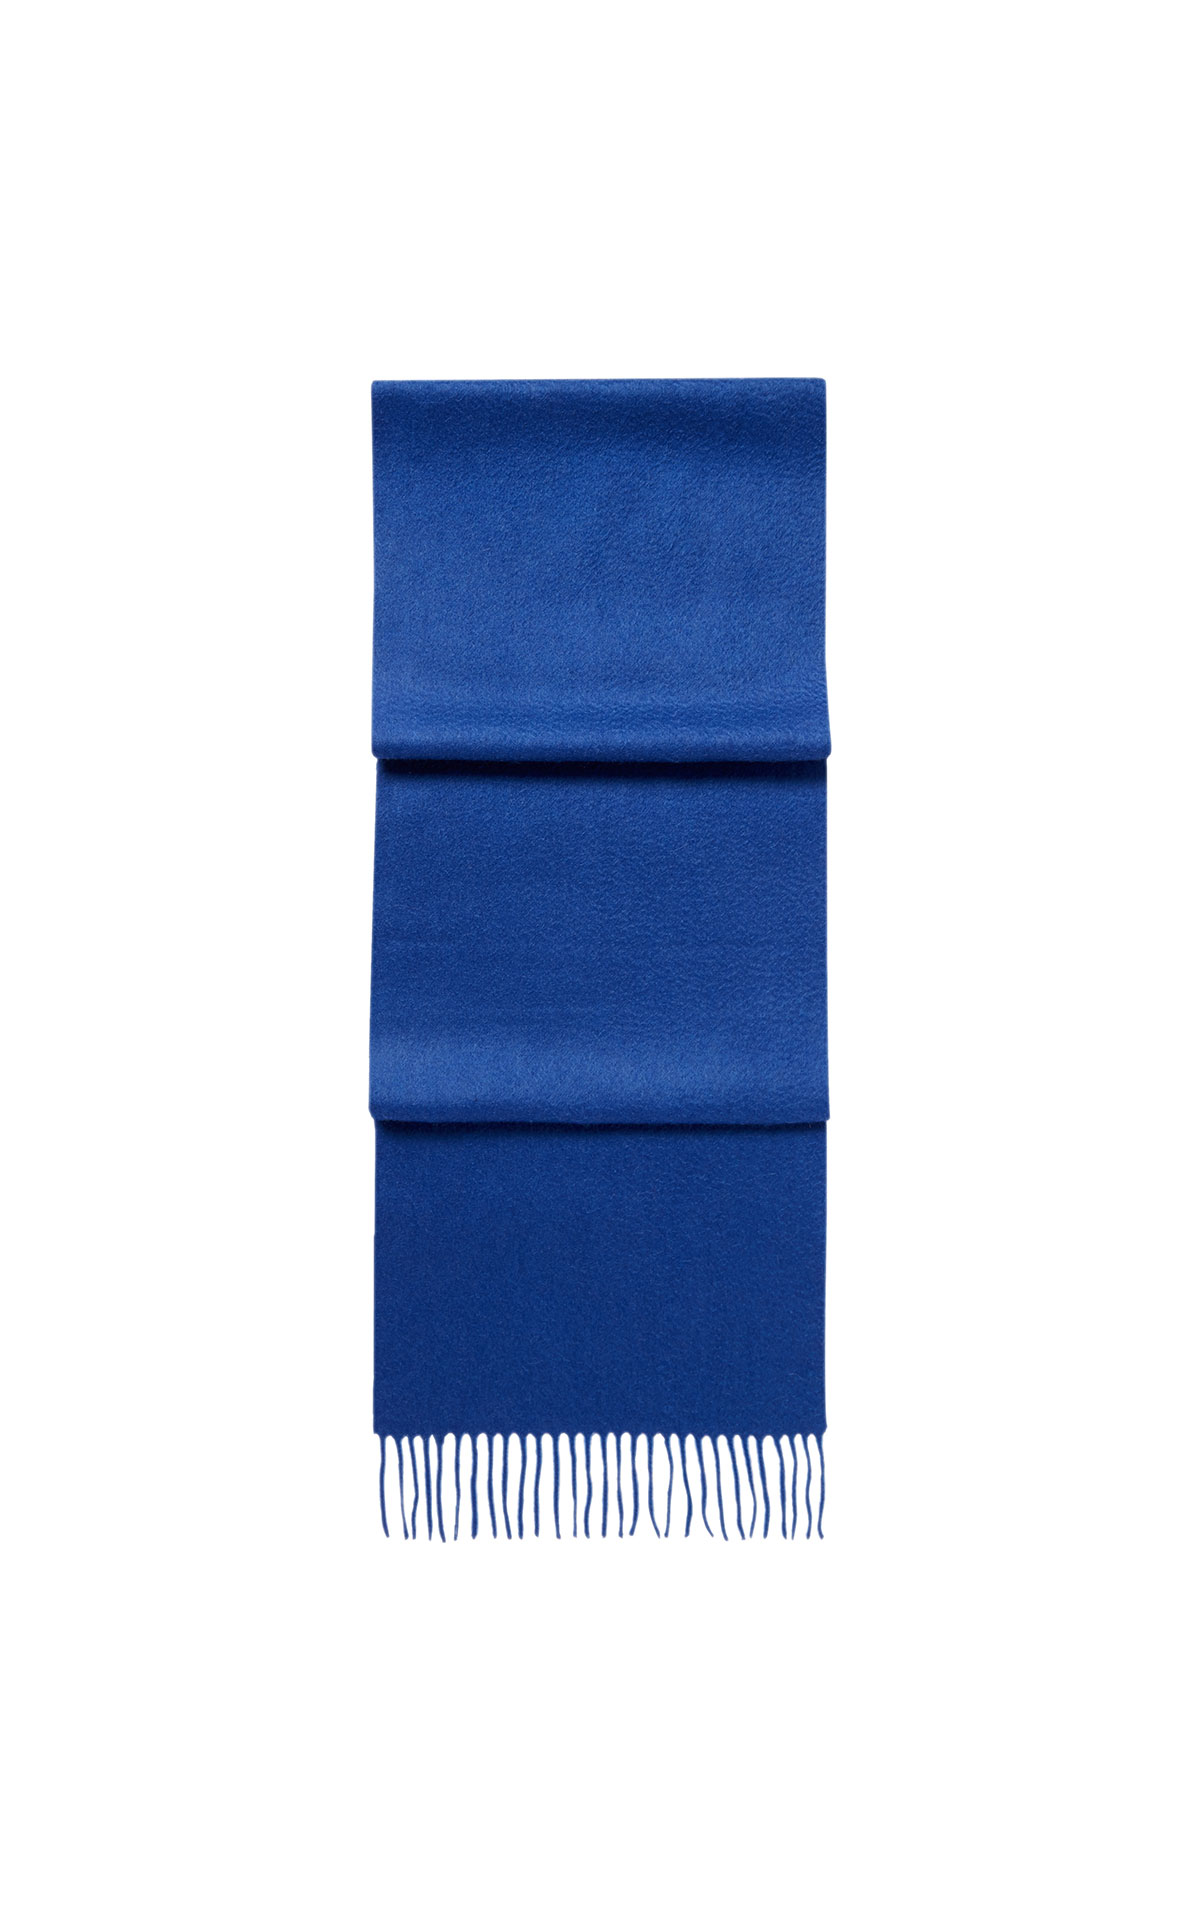 N.Peal Woven scarf blue from Bicester Village